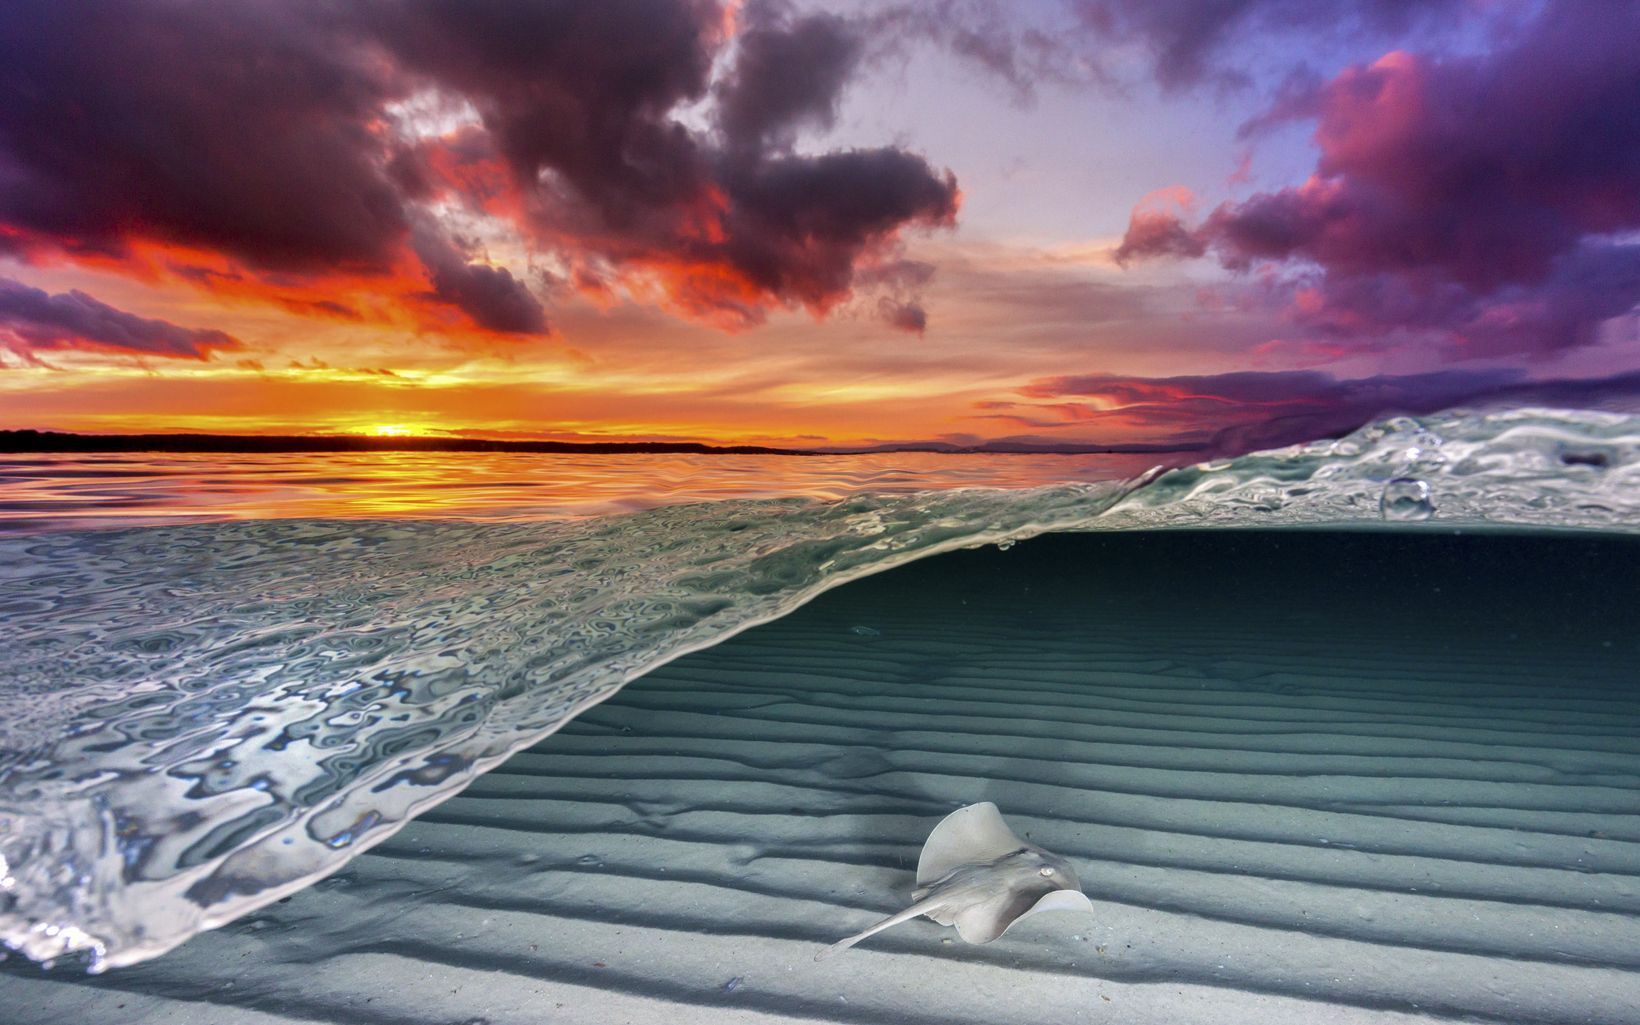 A common stingray gliding over the shallow sand flats as the sky bursts to life with color from the setting sun